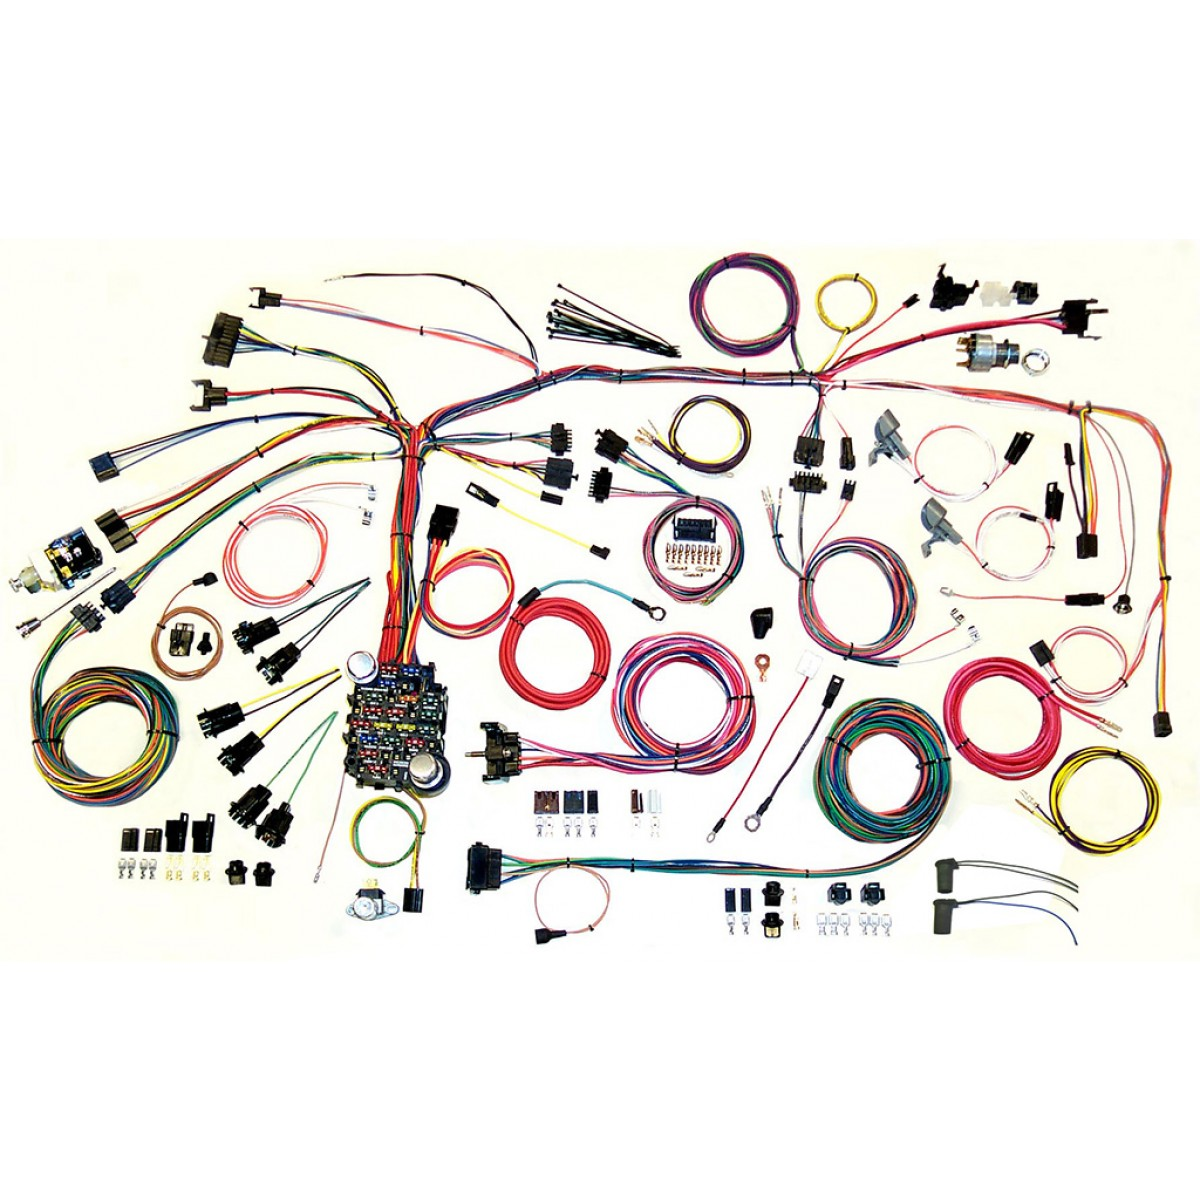 Pontiac 1968 Wiring Harness Engine Control Diagram 1970 Lemans 1967 Firbird Complete Kit Rh Code510 Com